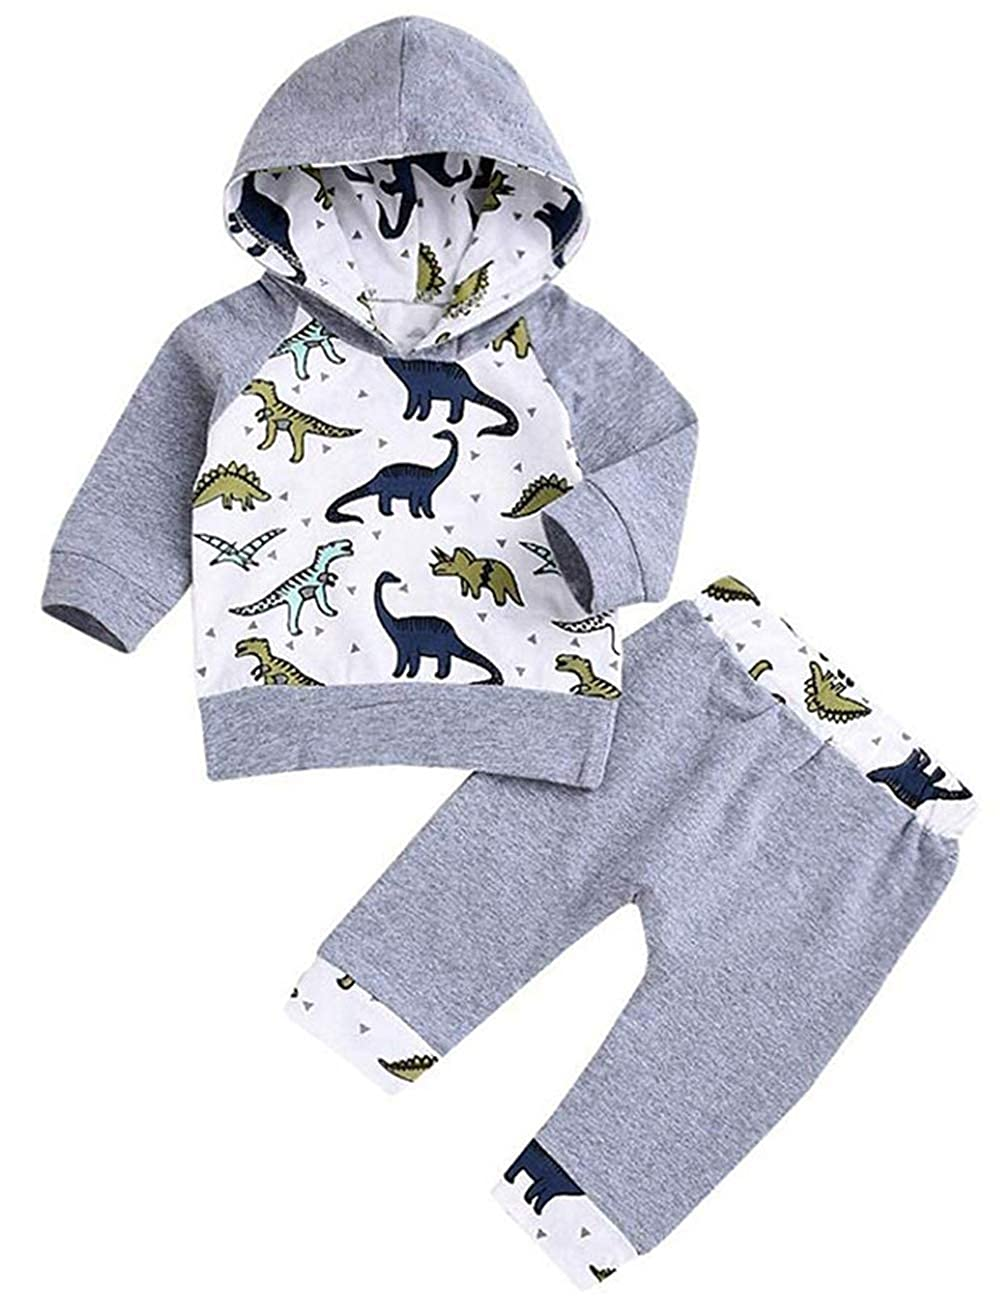 Newborn Baby Boy Girl Clothes Long Sleeve Dinosaur Hooded T-Shirt Tops + Cute Pants 2PCS Outfit Set Xuuly